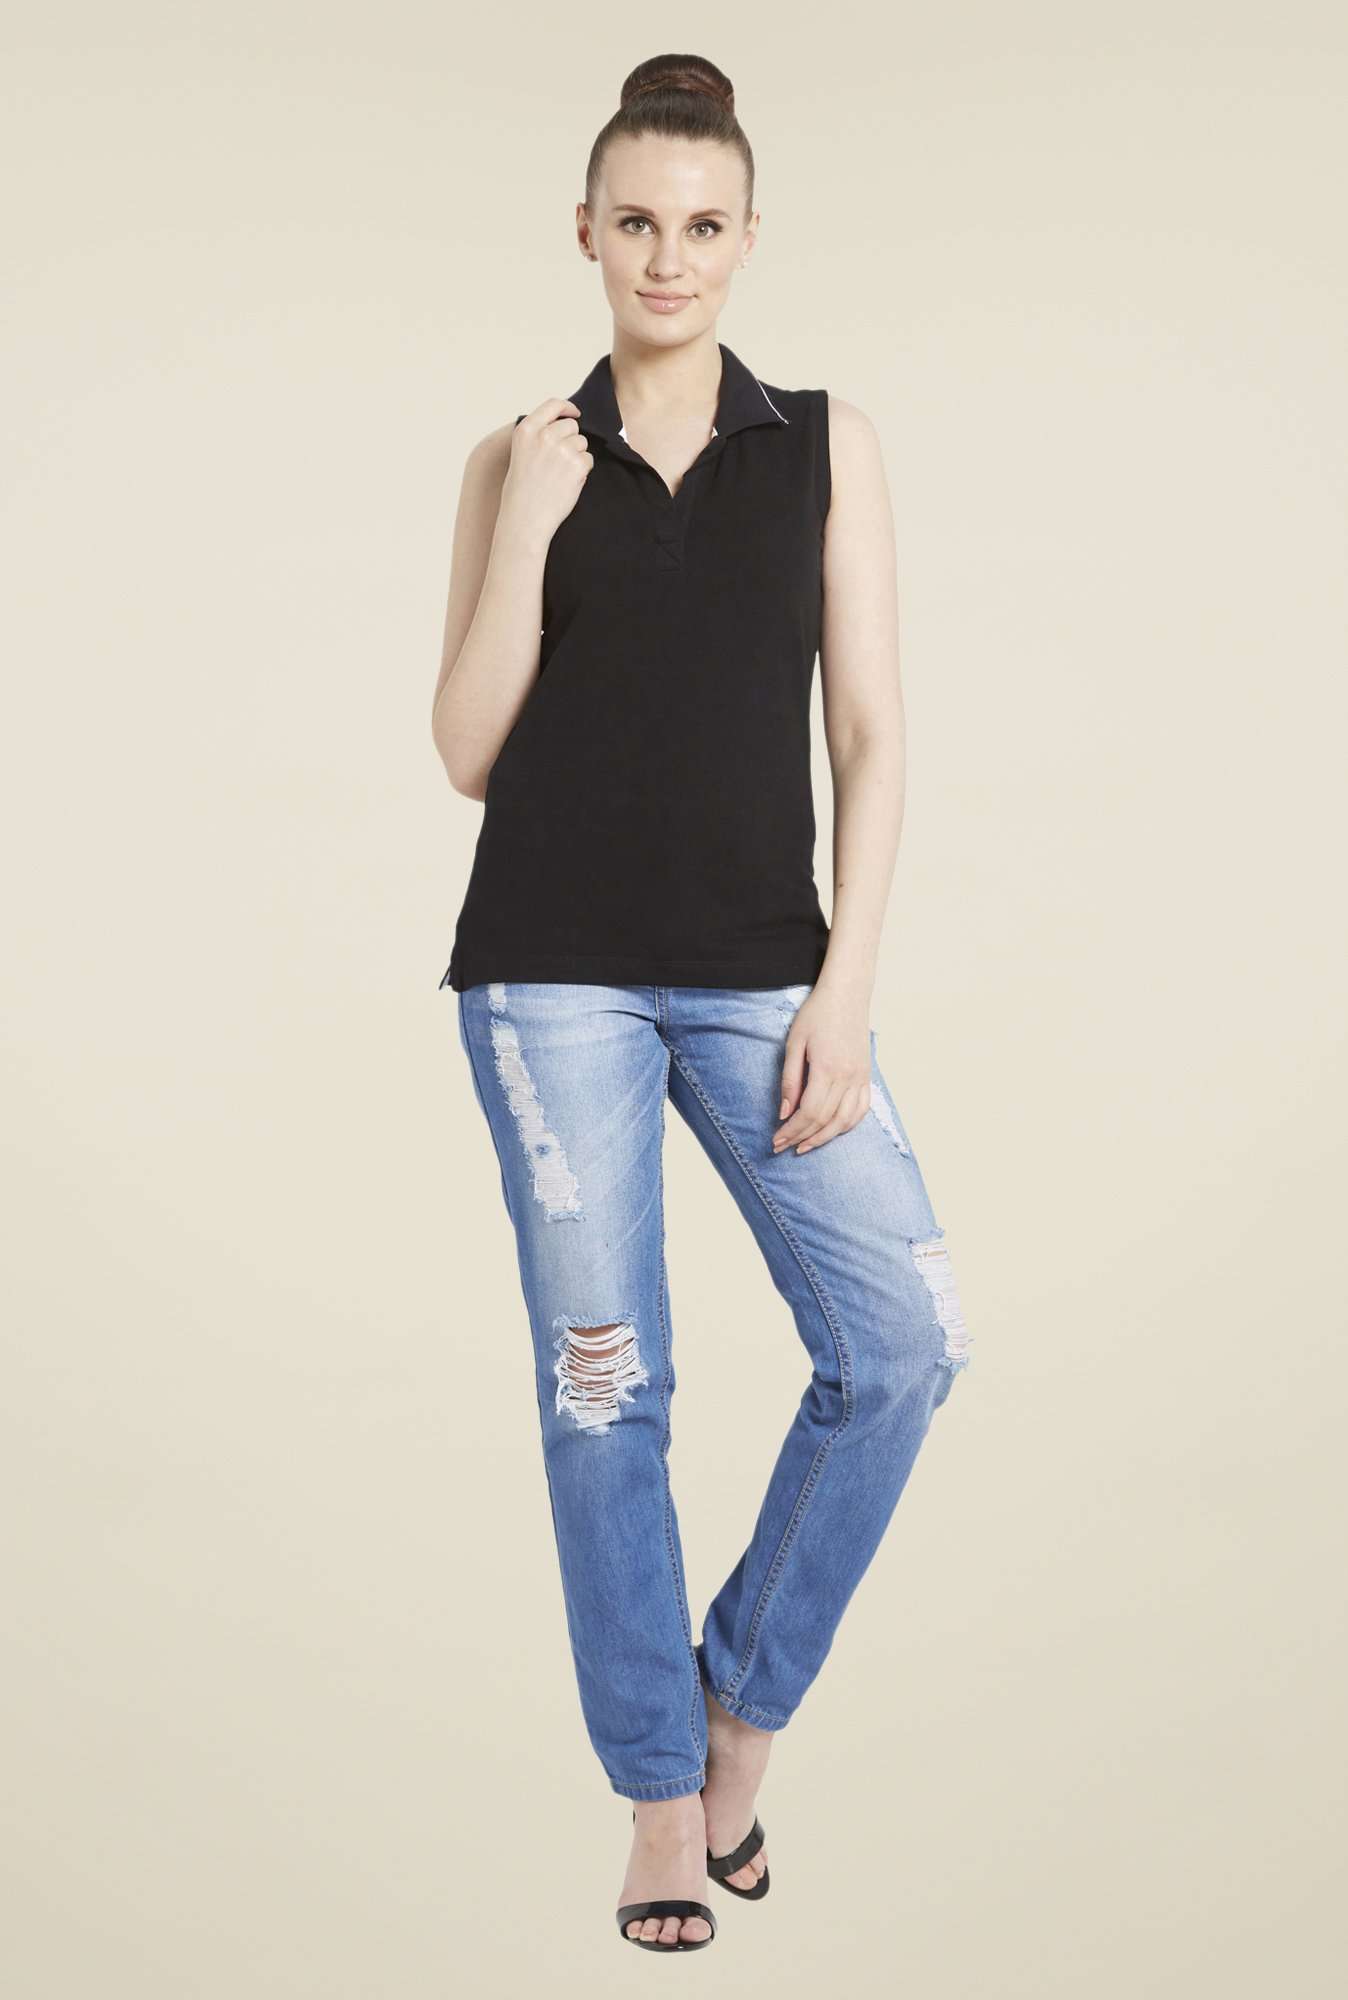 Globus Black Solid Sleeveless T-Shirt